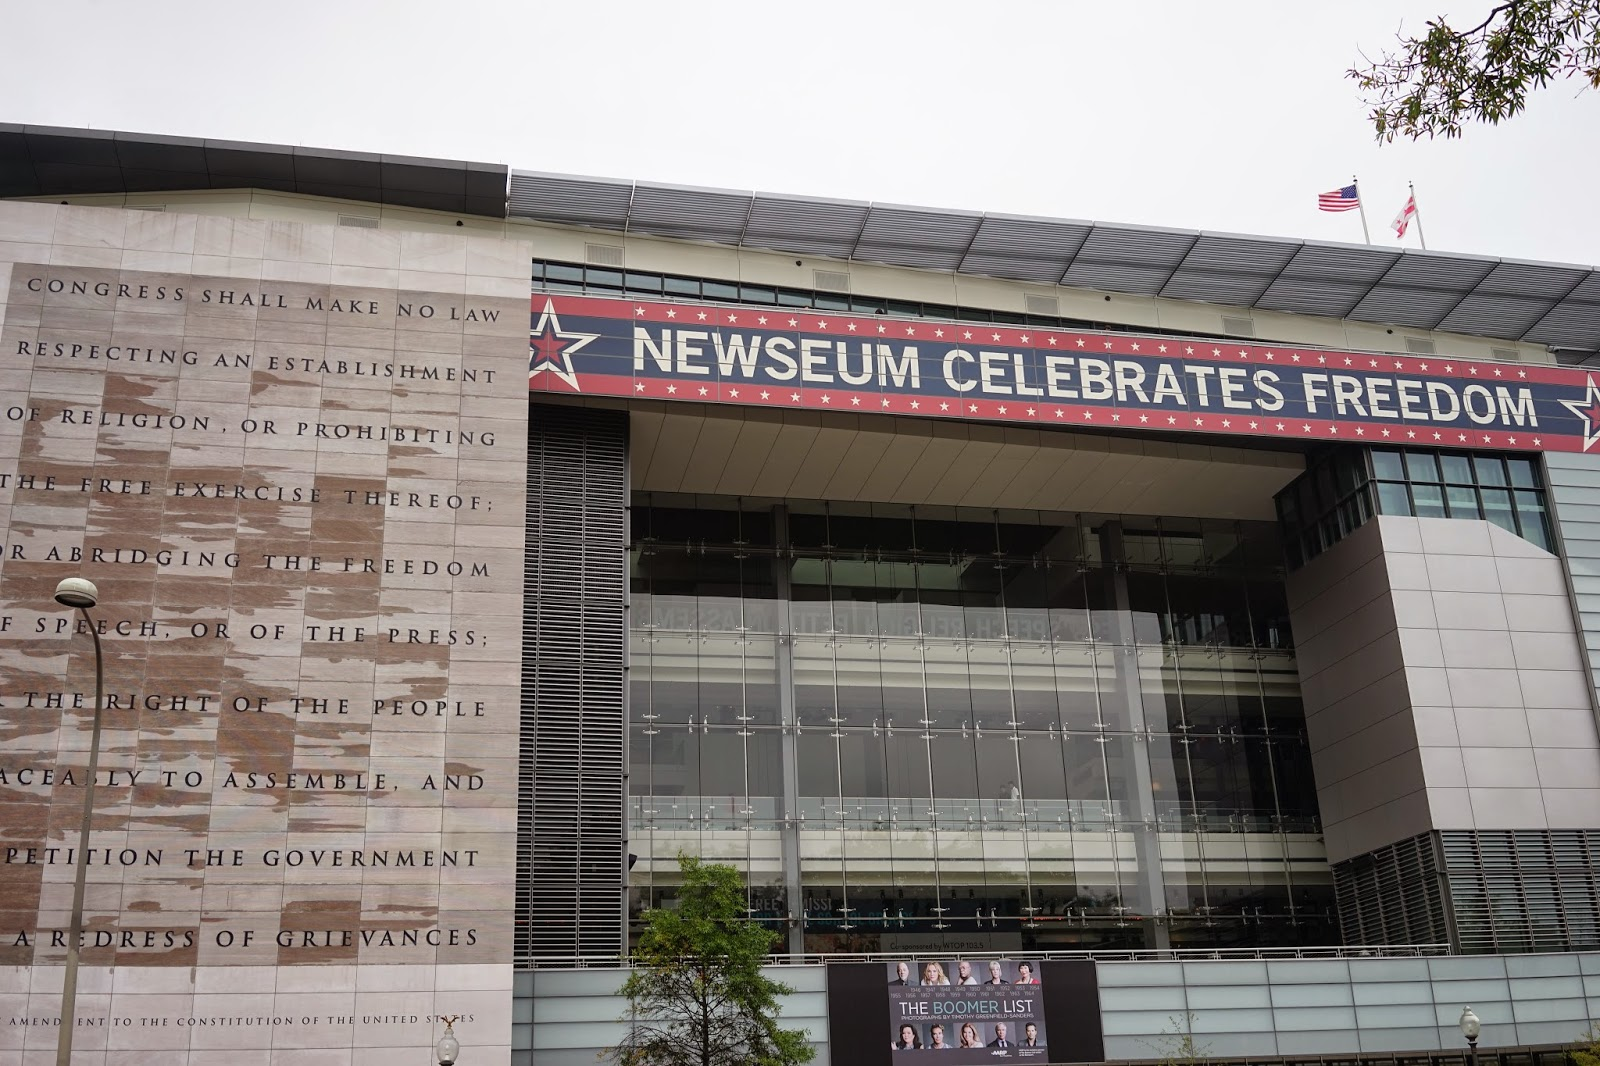 newseum washington d.c